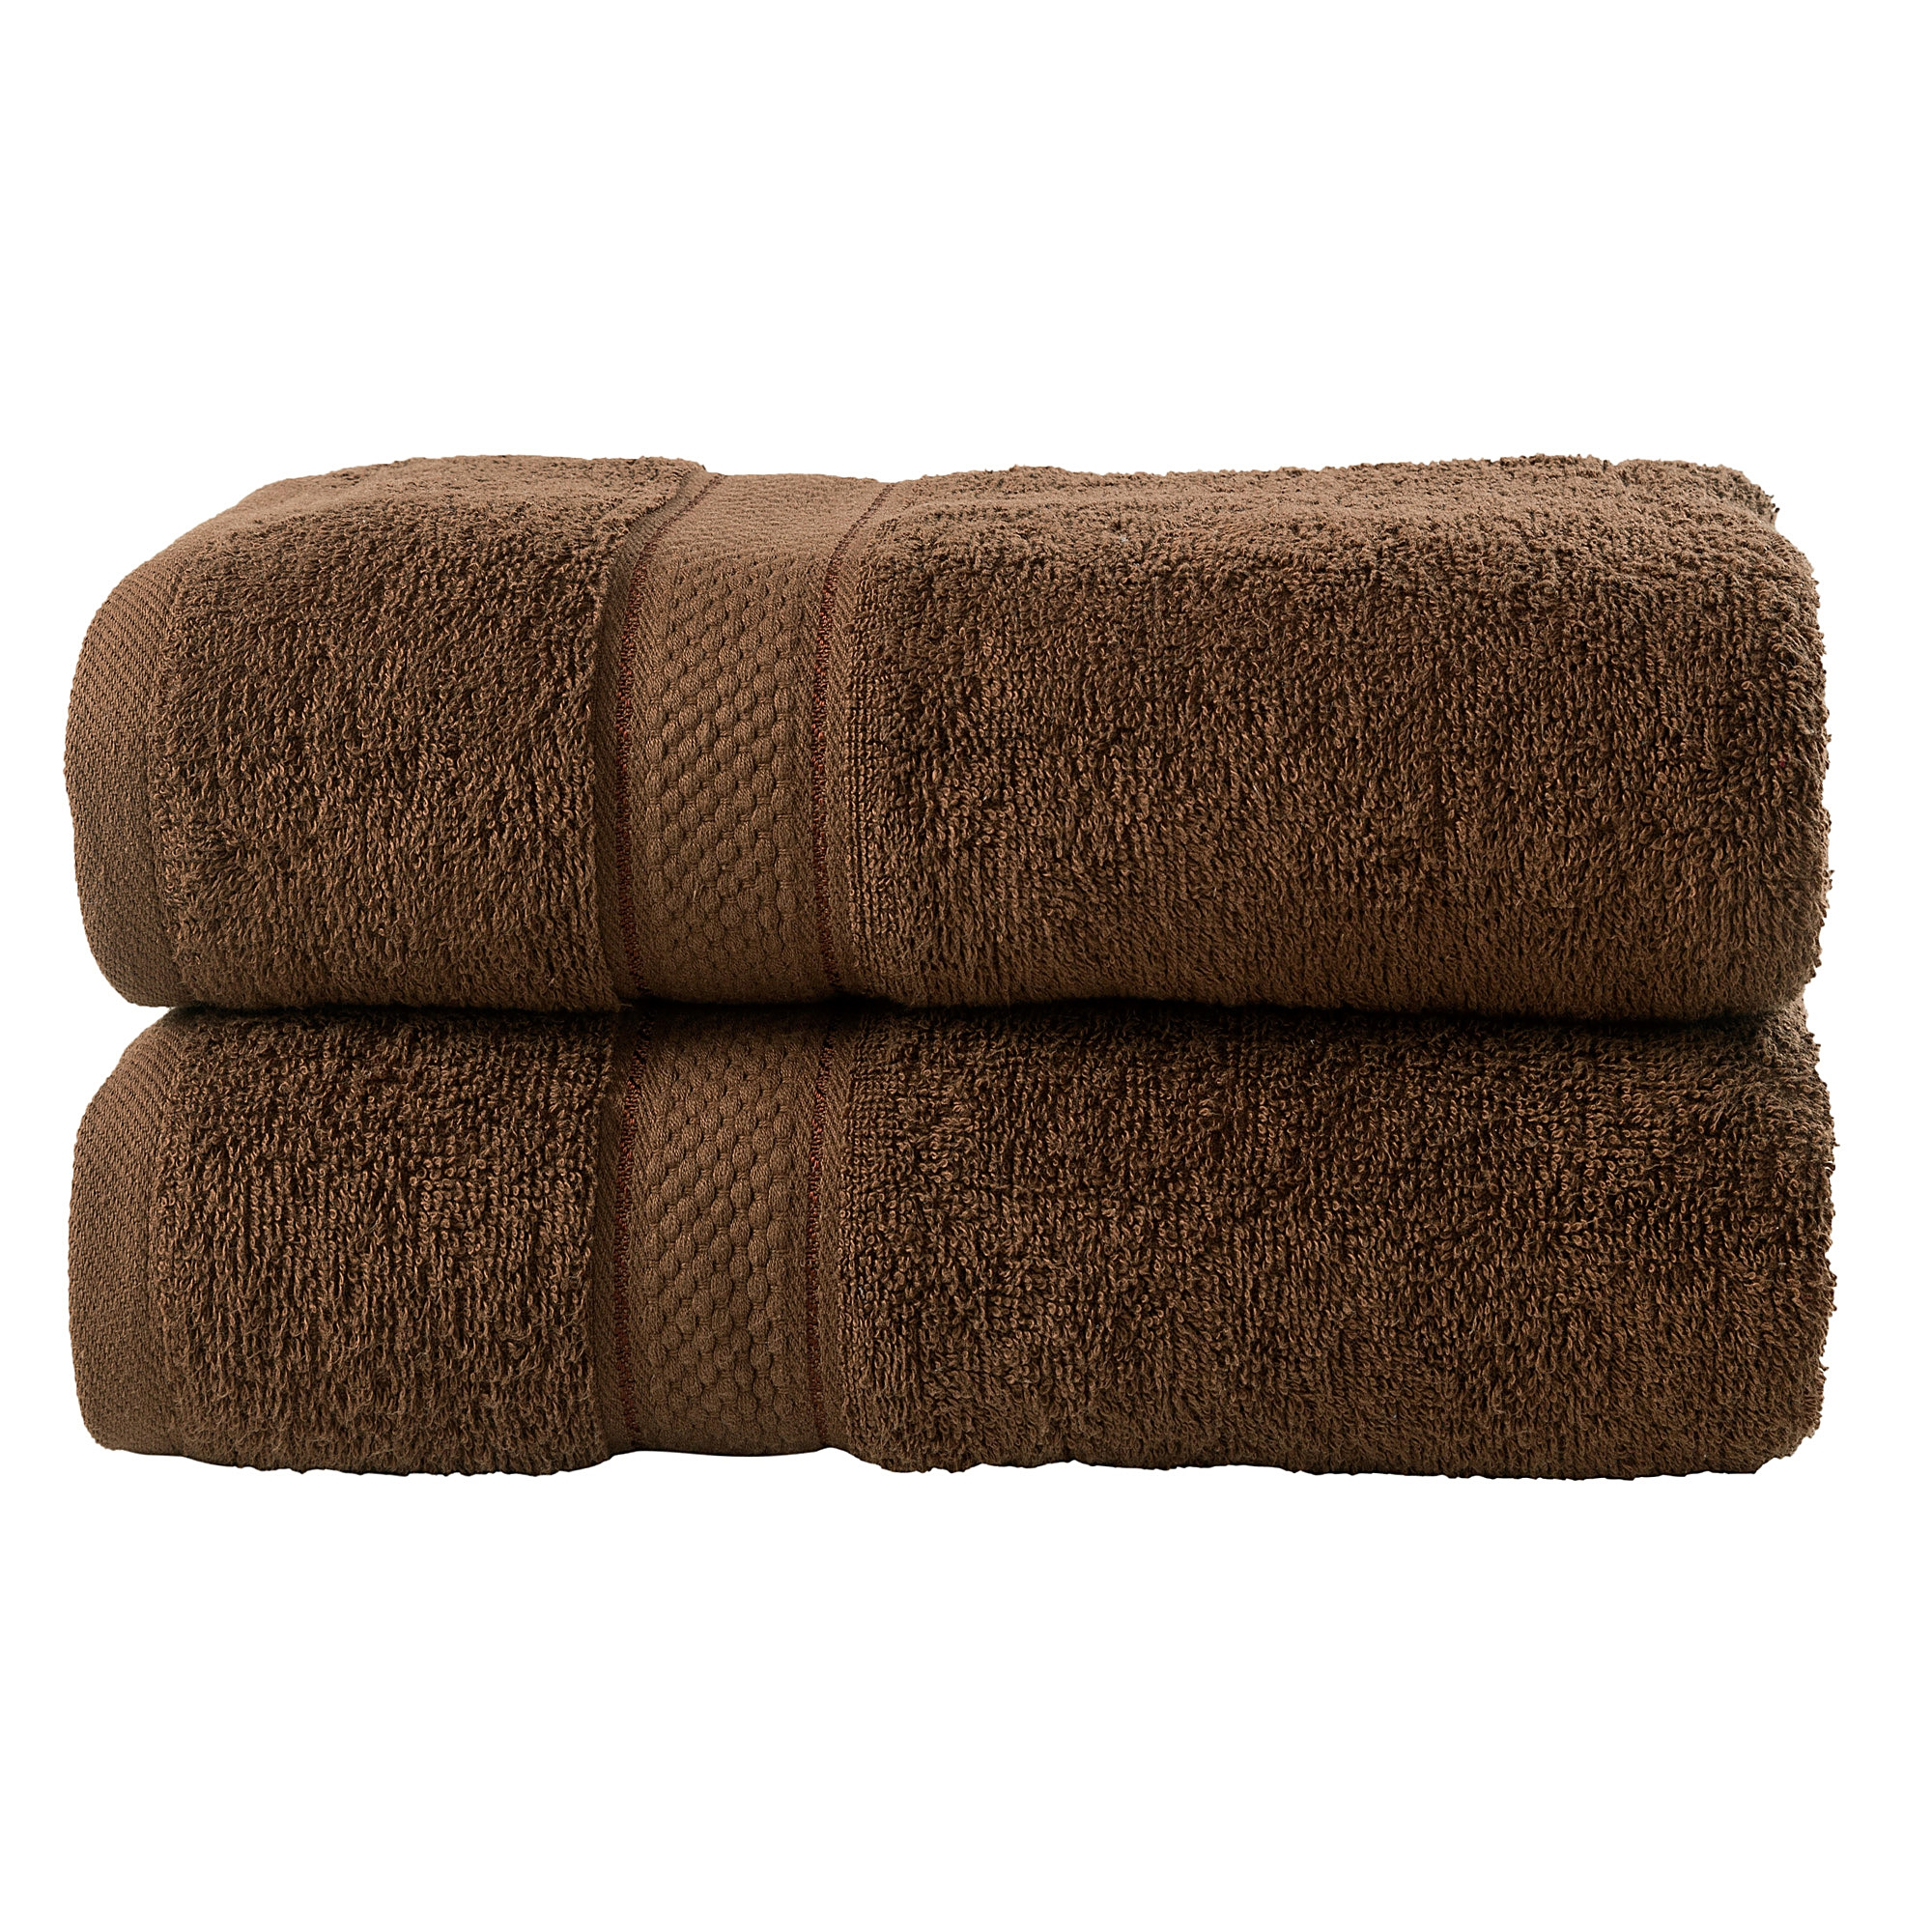 2 Pcs Bath Cotton Towel Bale Set Chocolate Plain